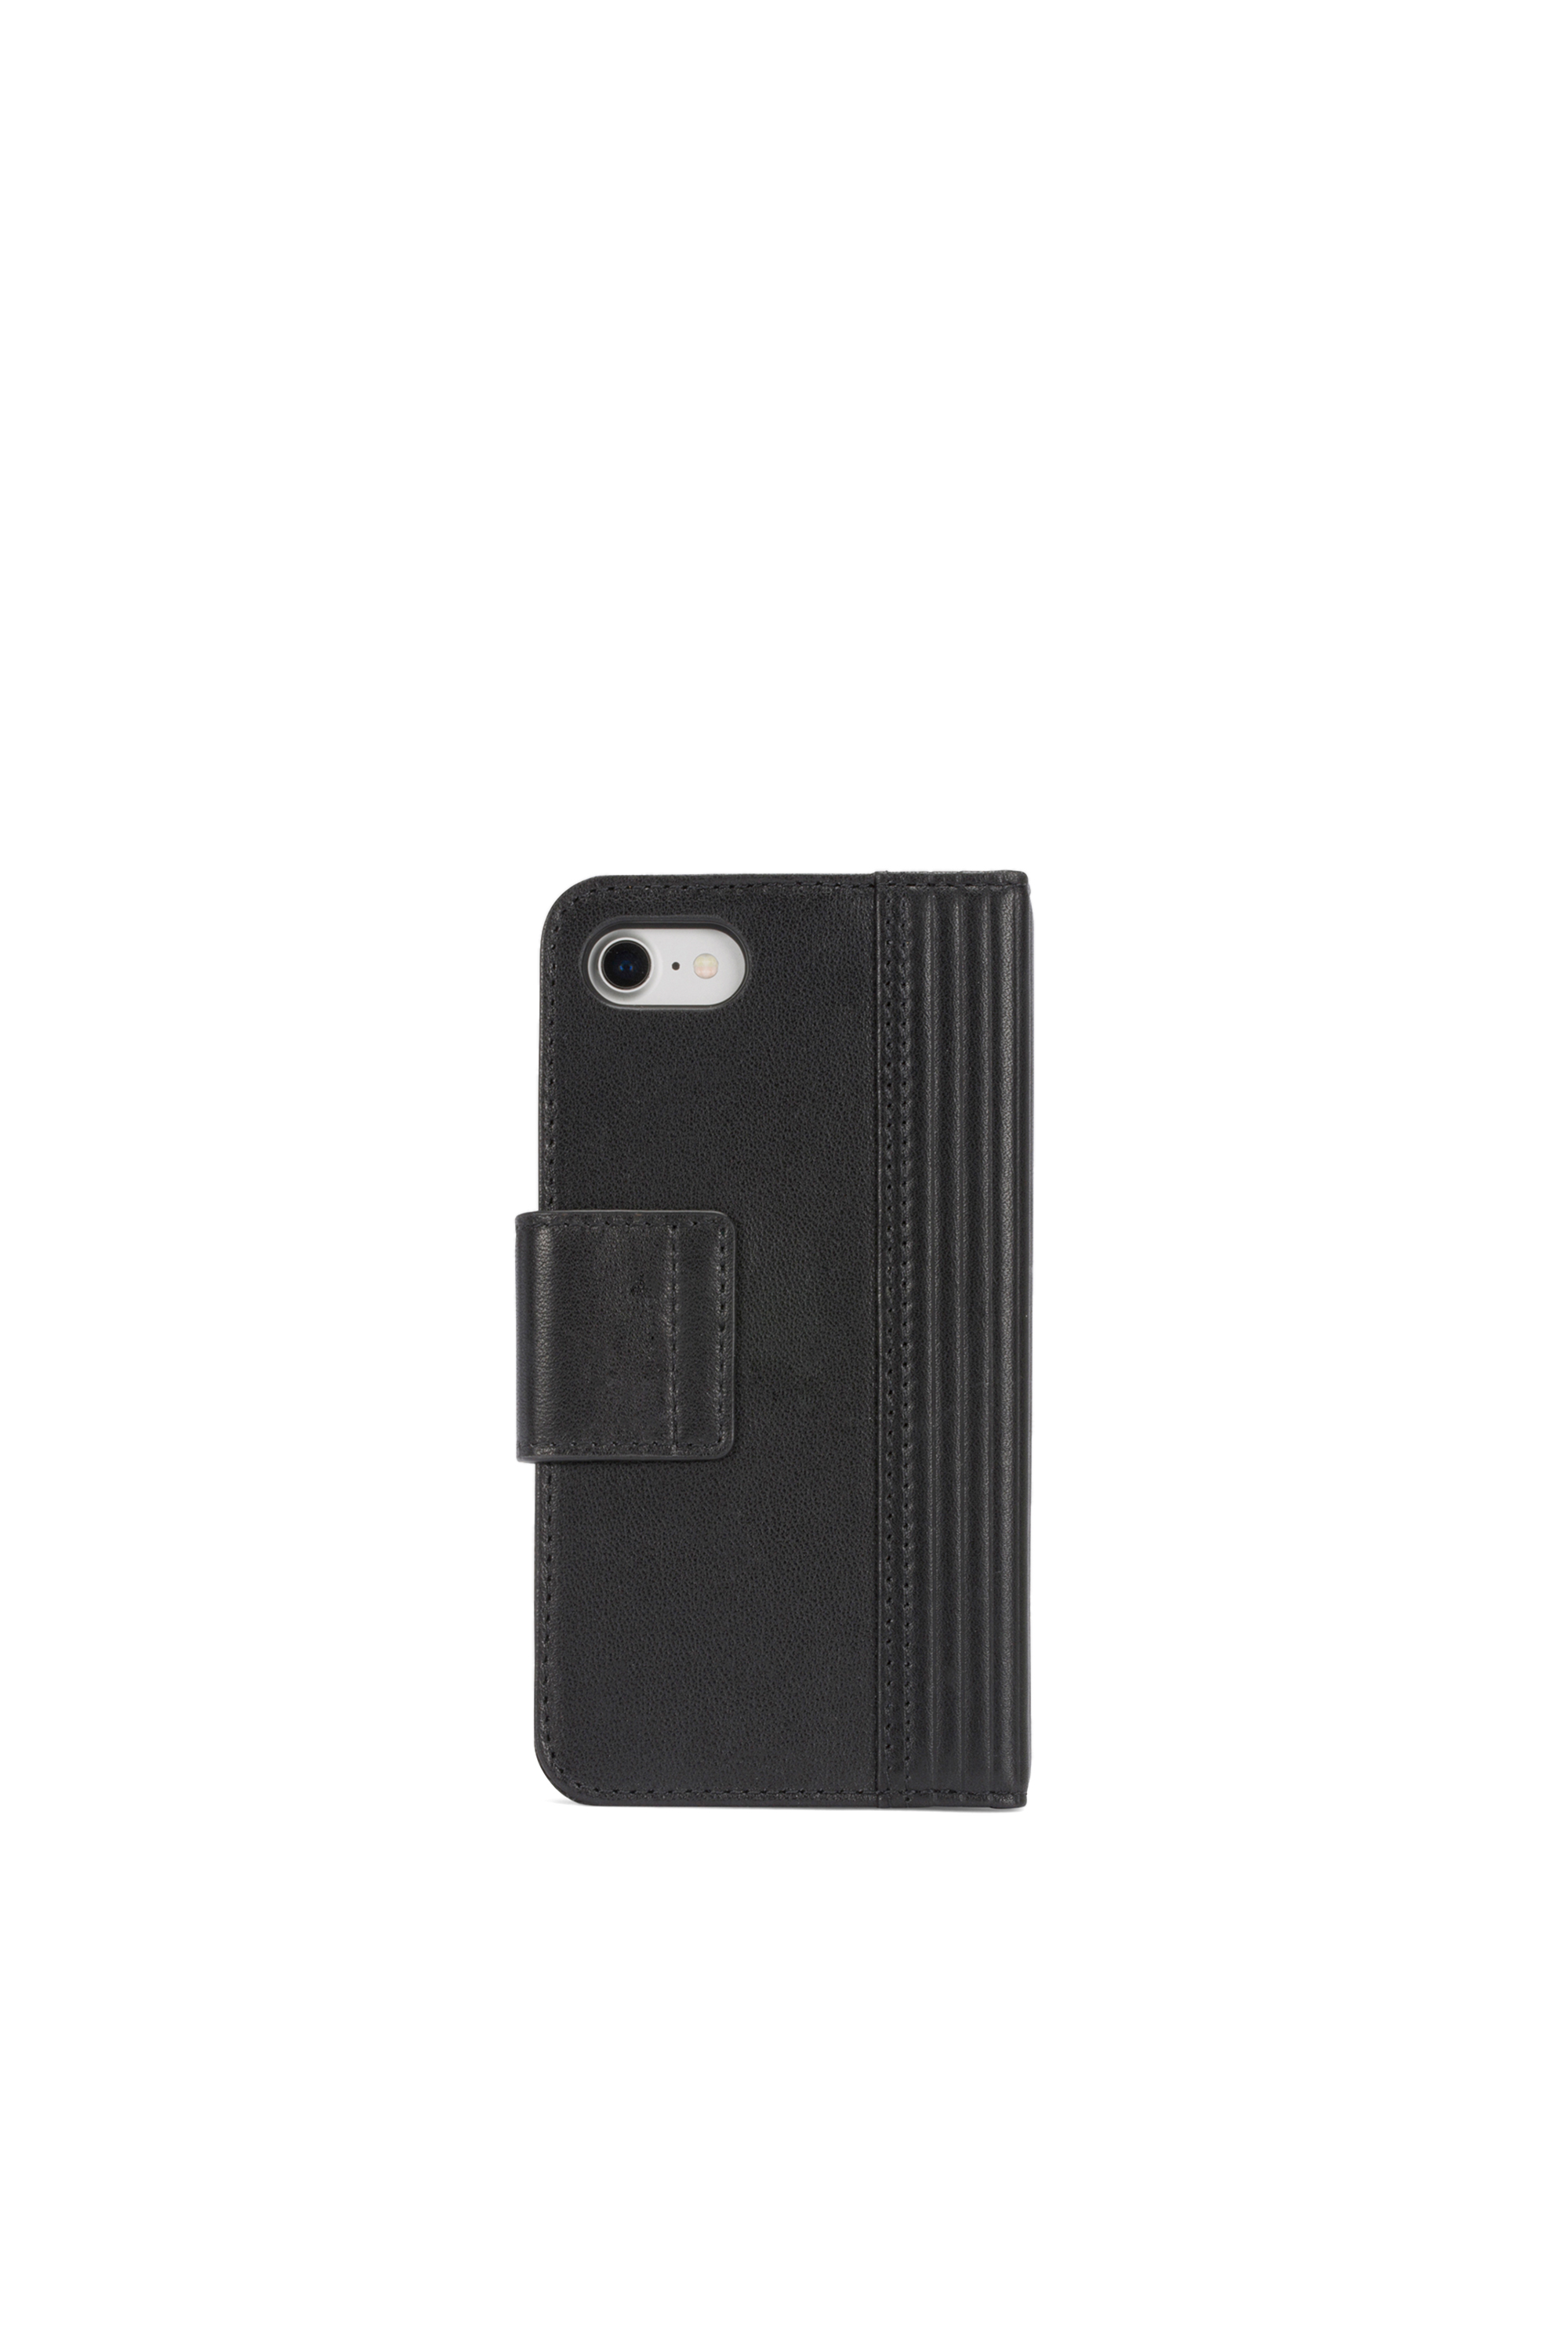 Diesel - BLACK LINED LEATHER IPHONE 8/7 FOLIO,  - Coques à rabat - Image 4